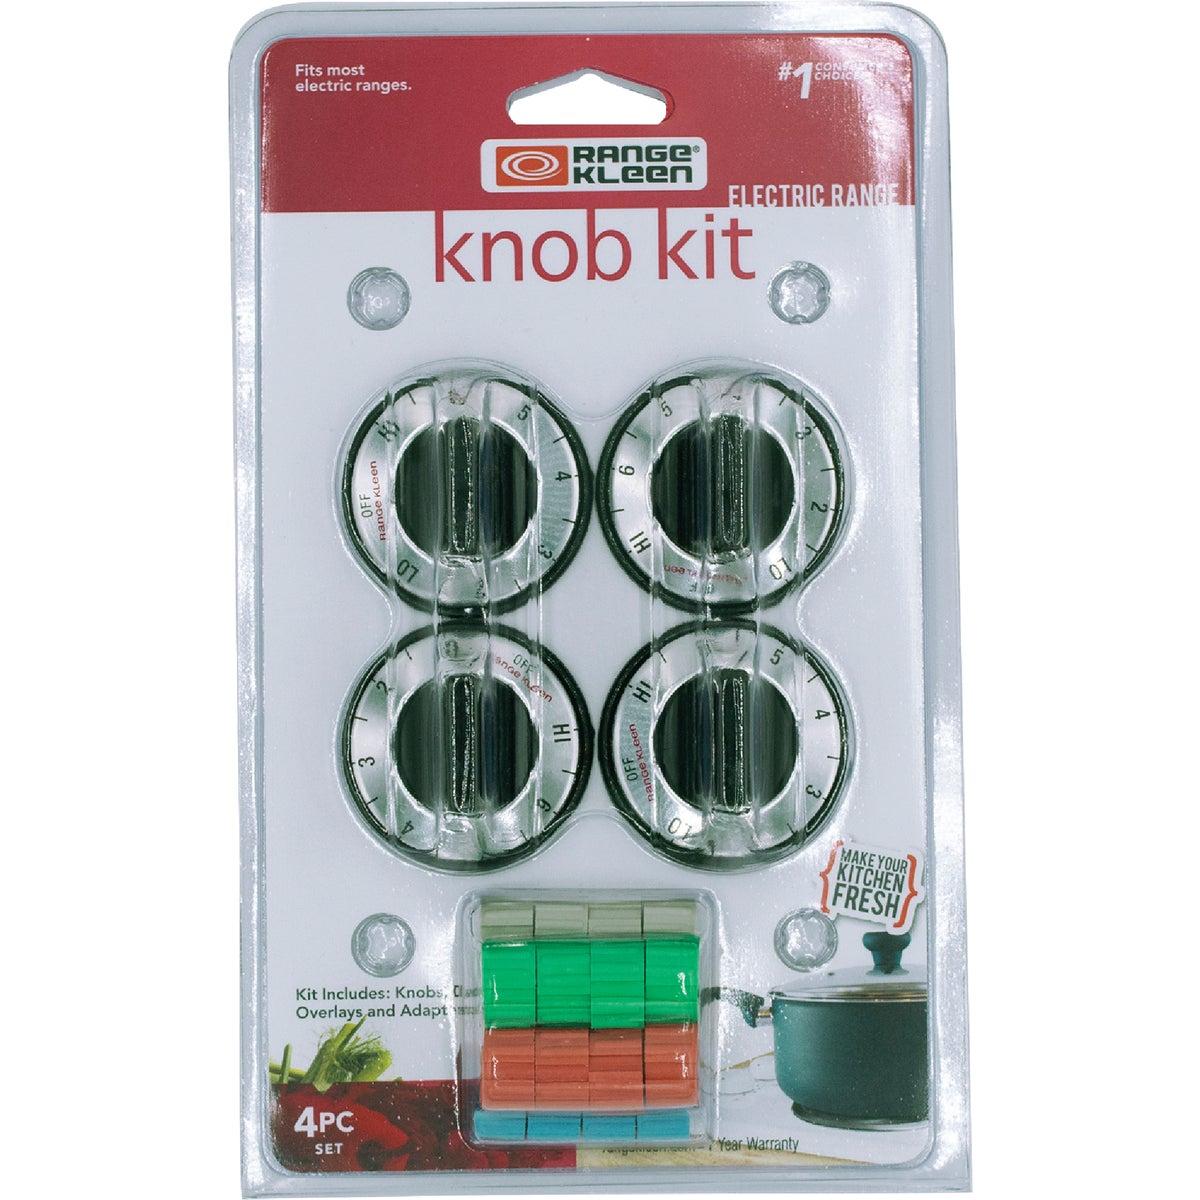 BLACK ELECTRIC KNOB KIT - 8114 by Range Kleen Mfg Inc